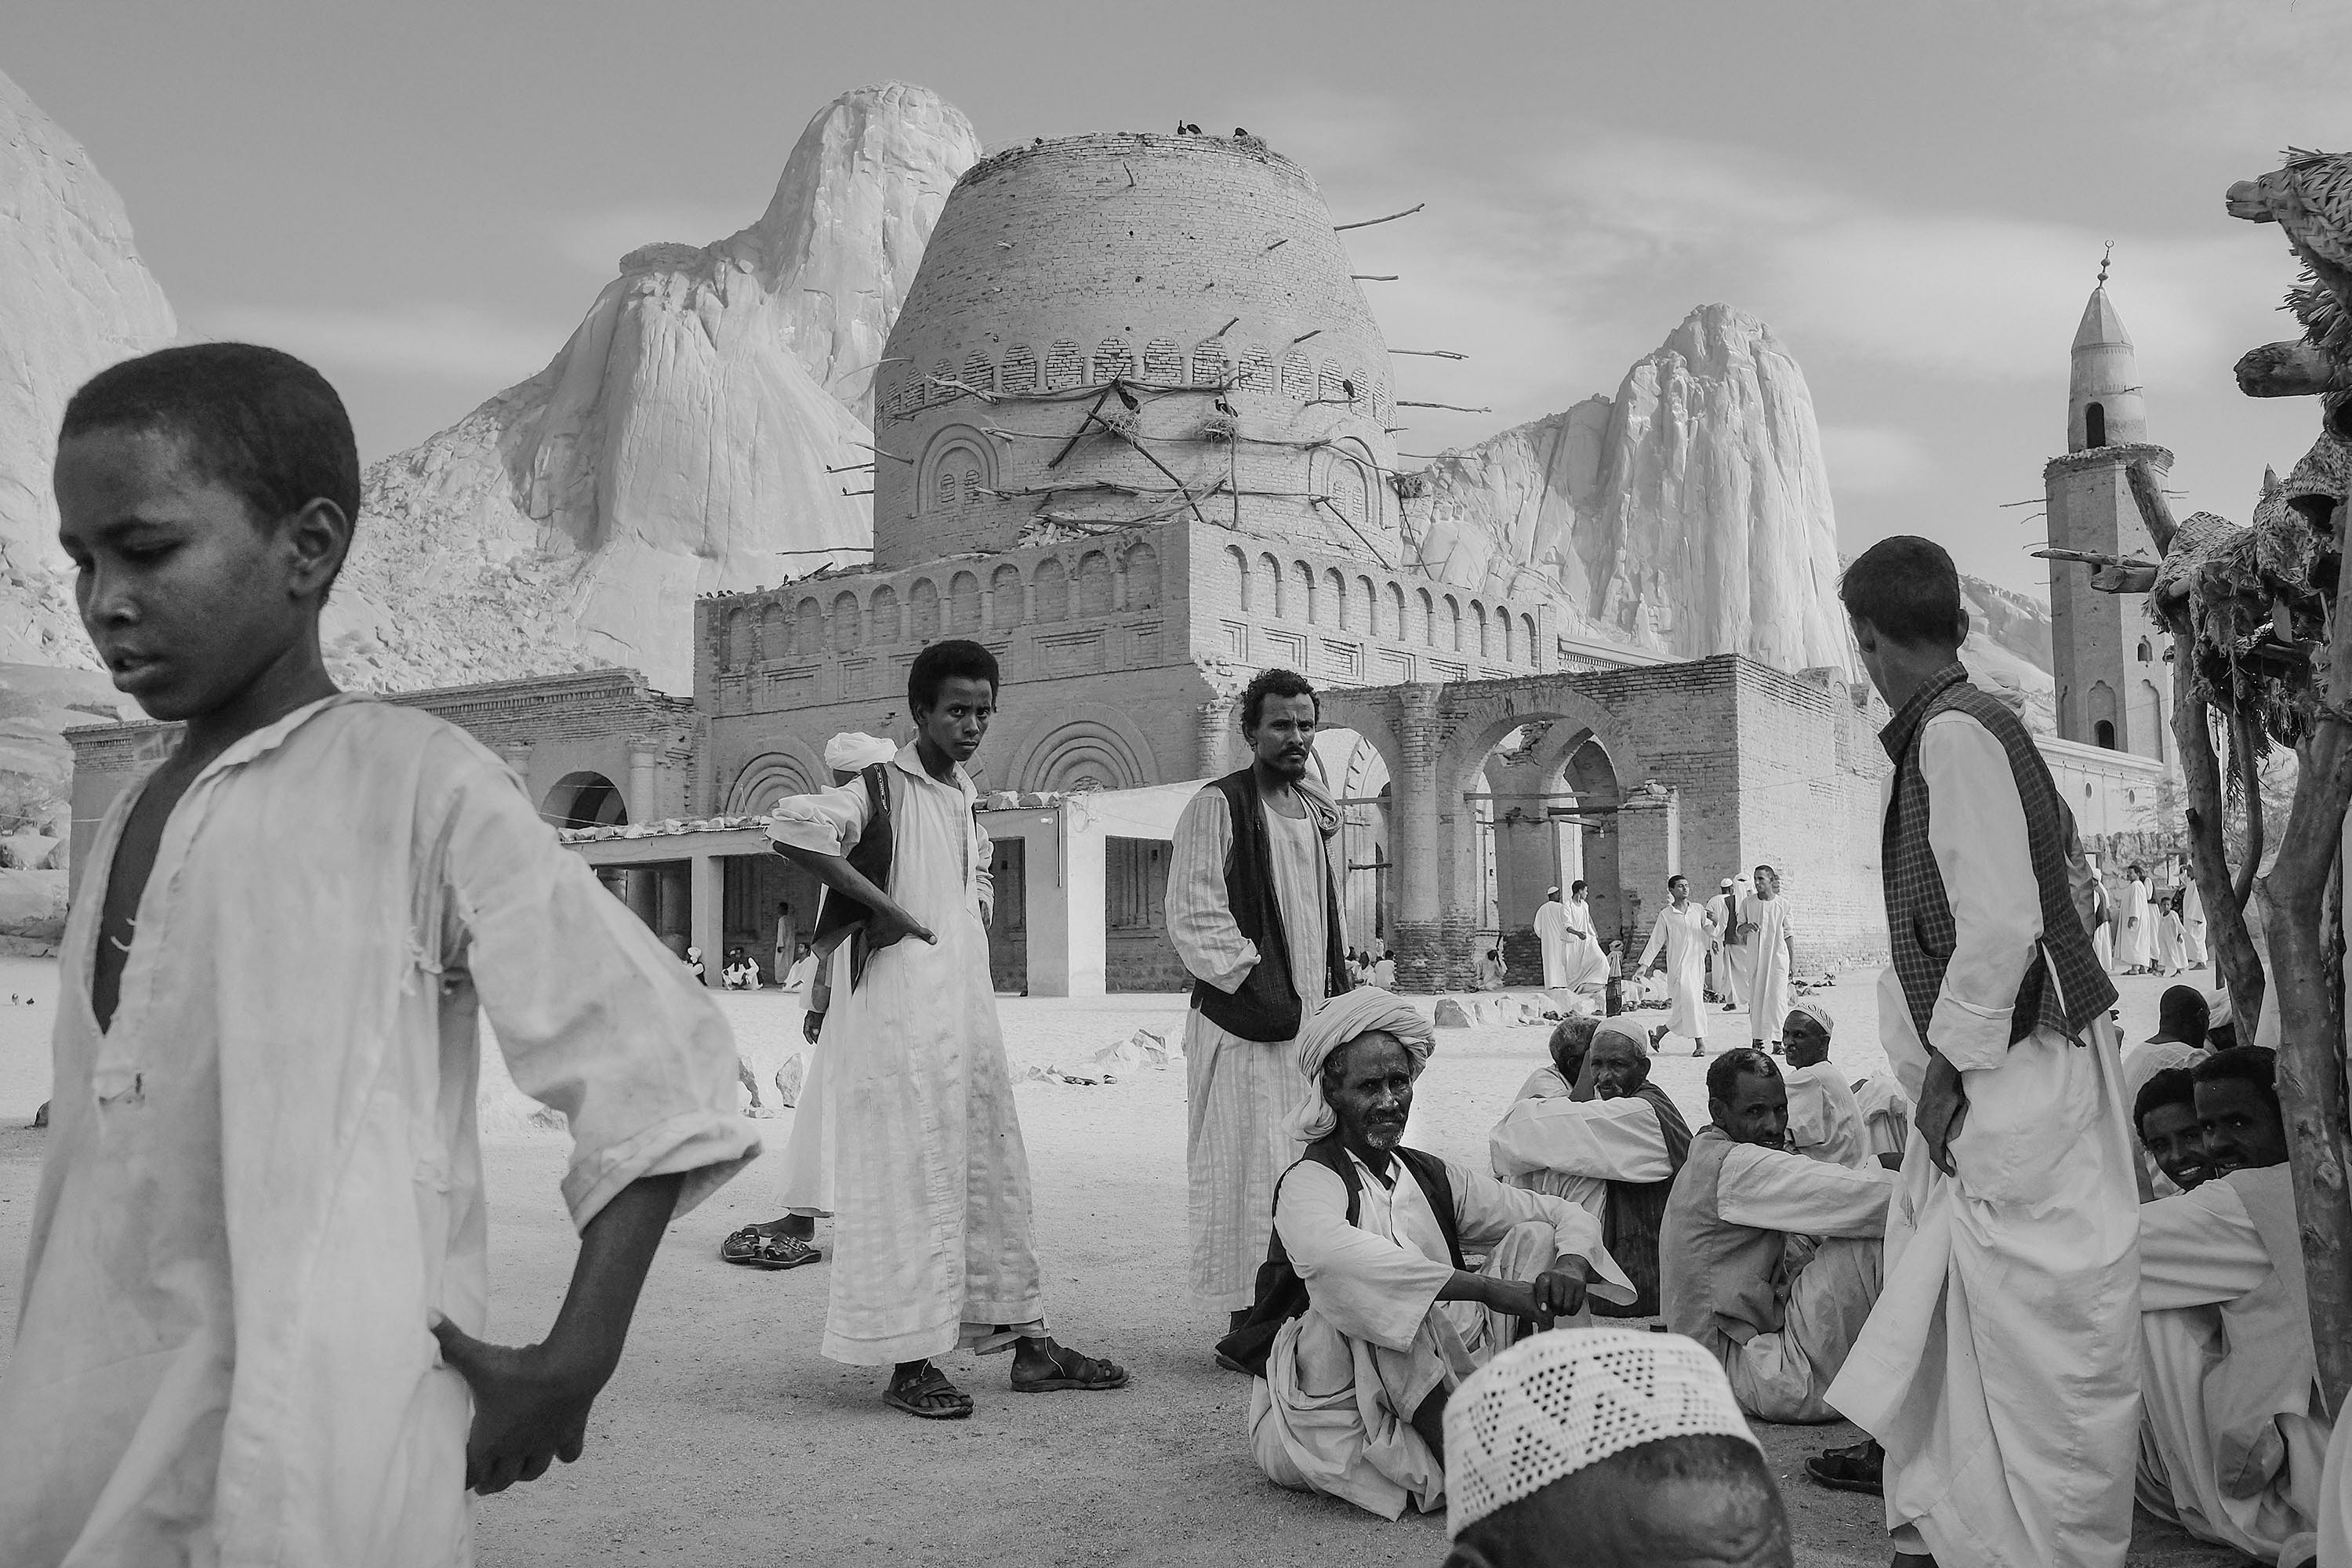 18. Khatmiya mosque with Taka mountais in the background. Kassala. Sudan. 2017